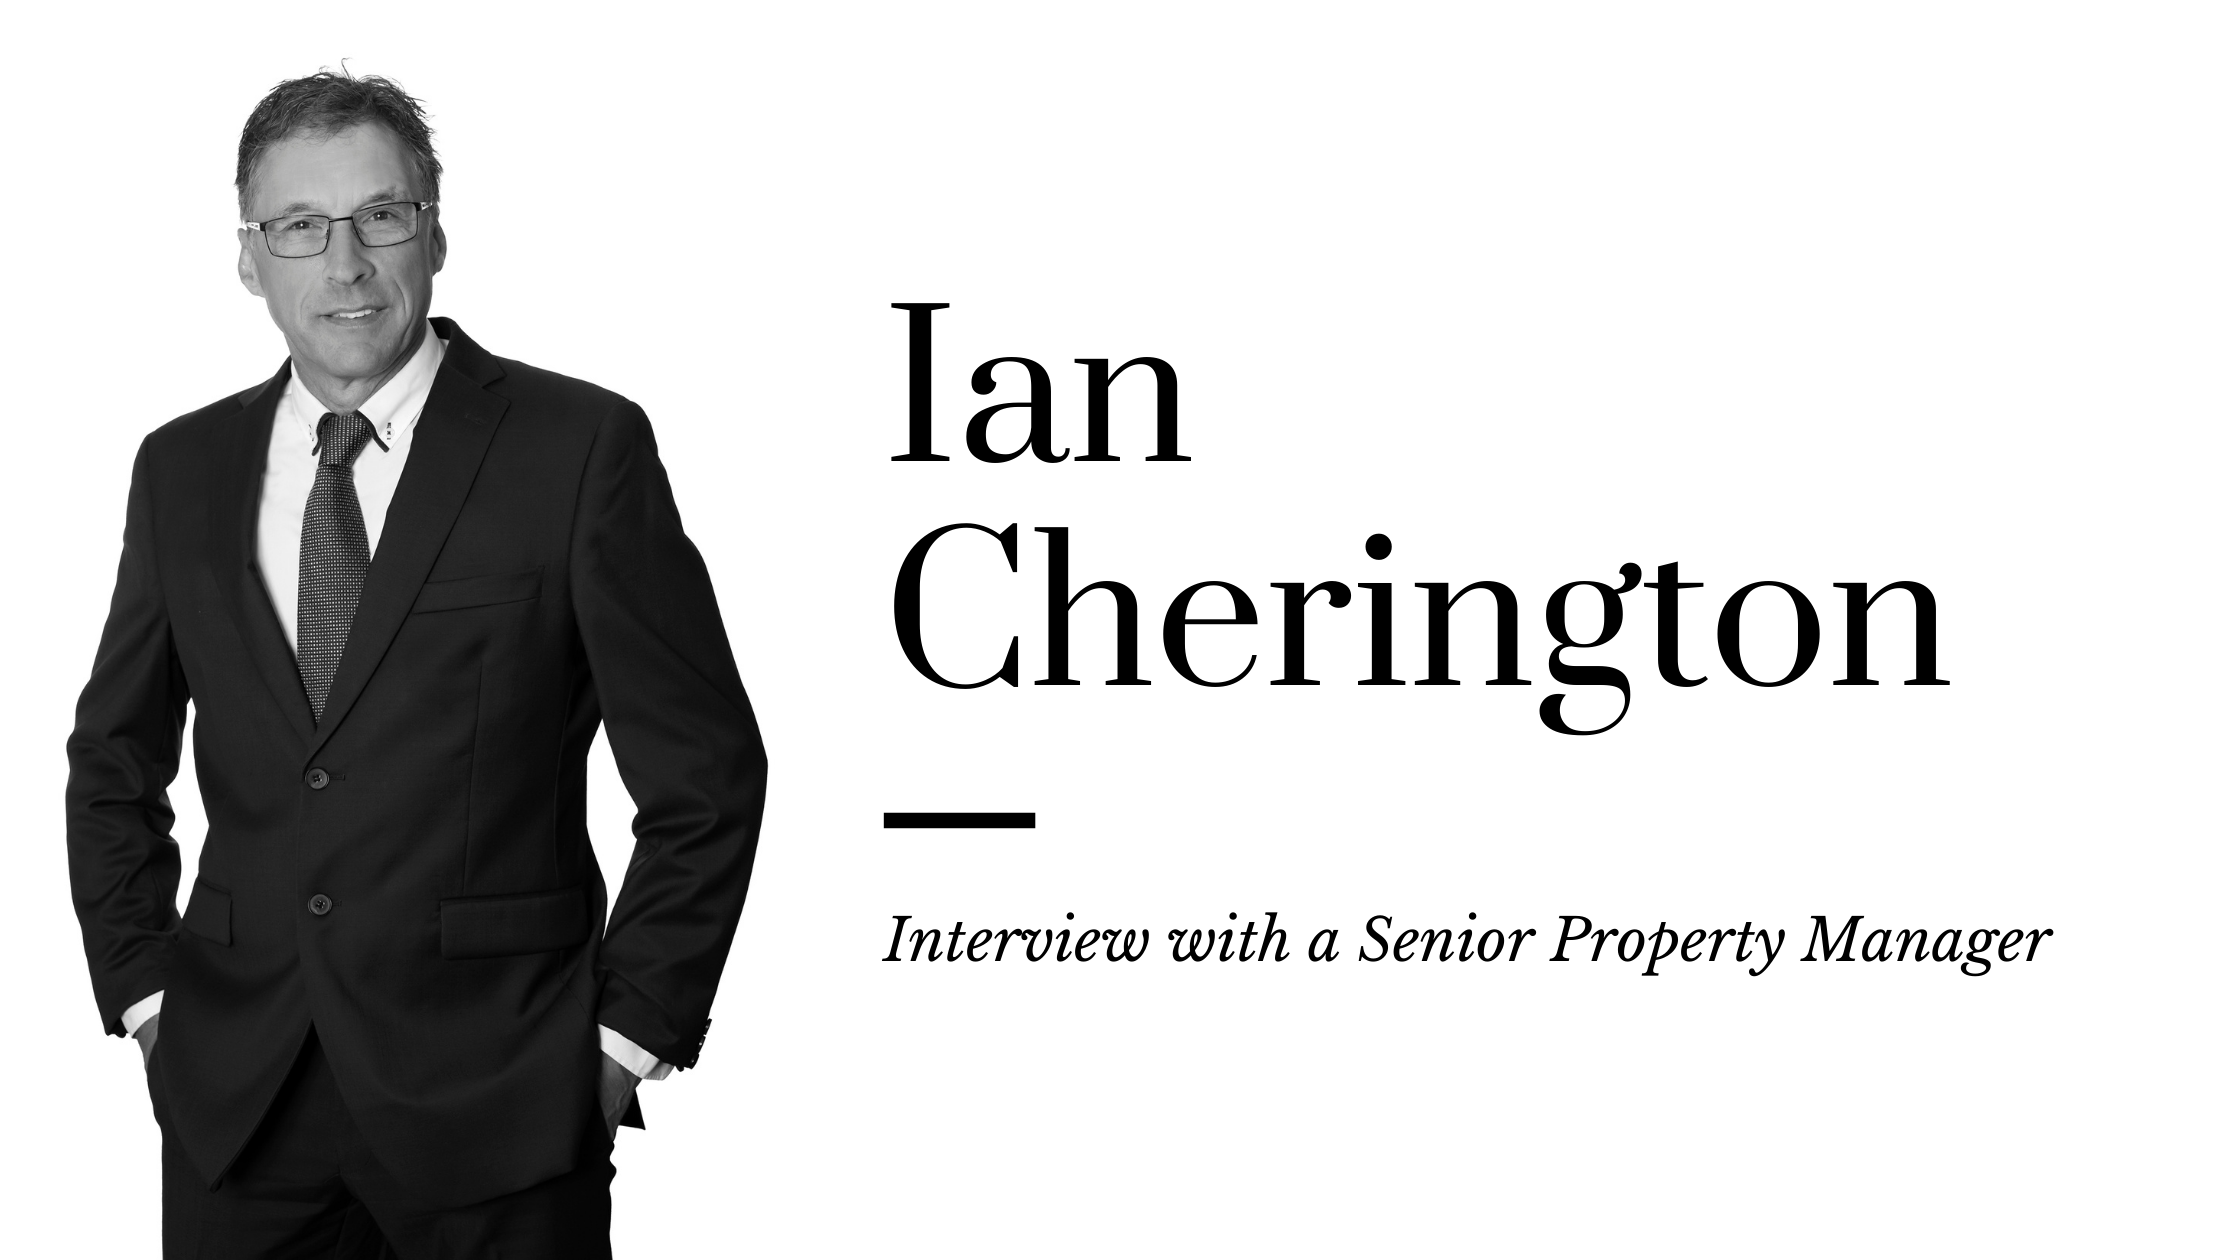 5 Minutes with Ian Cherington